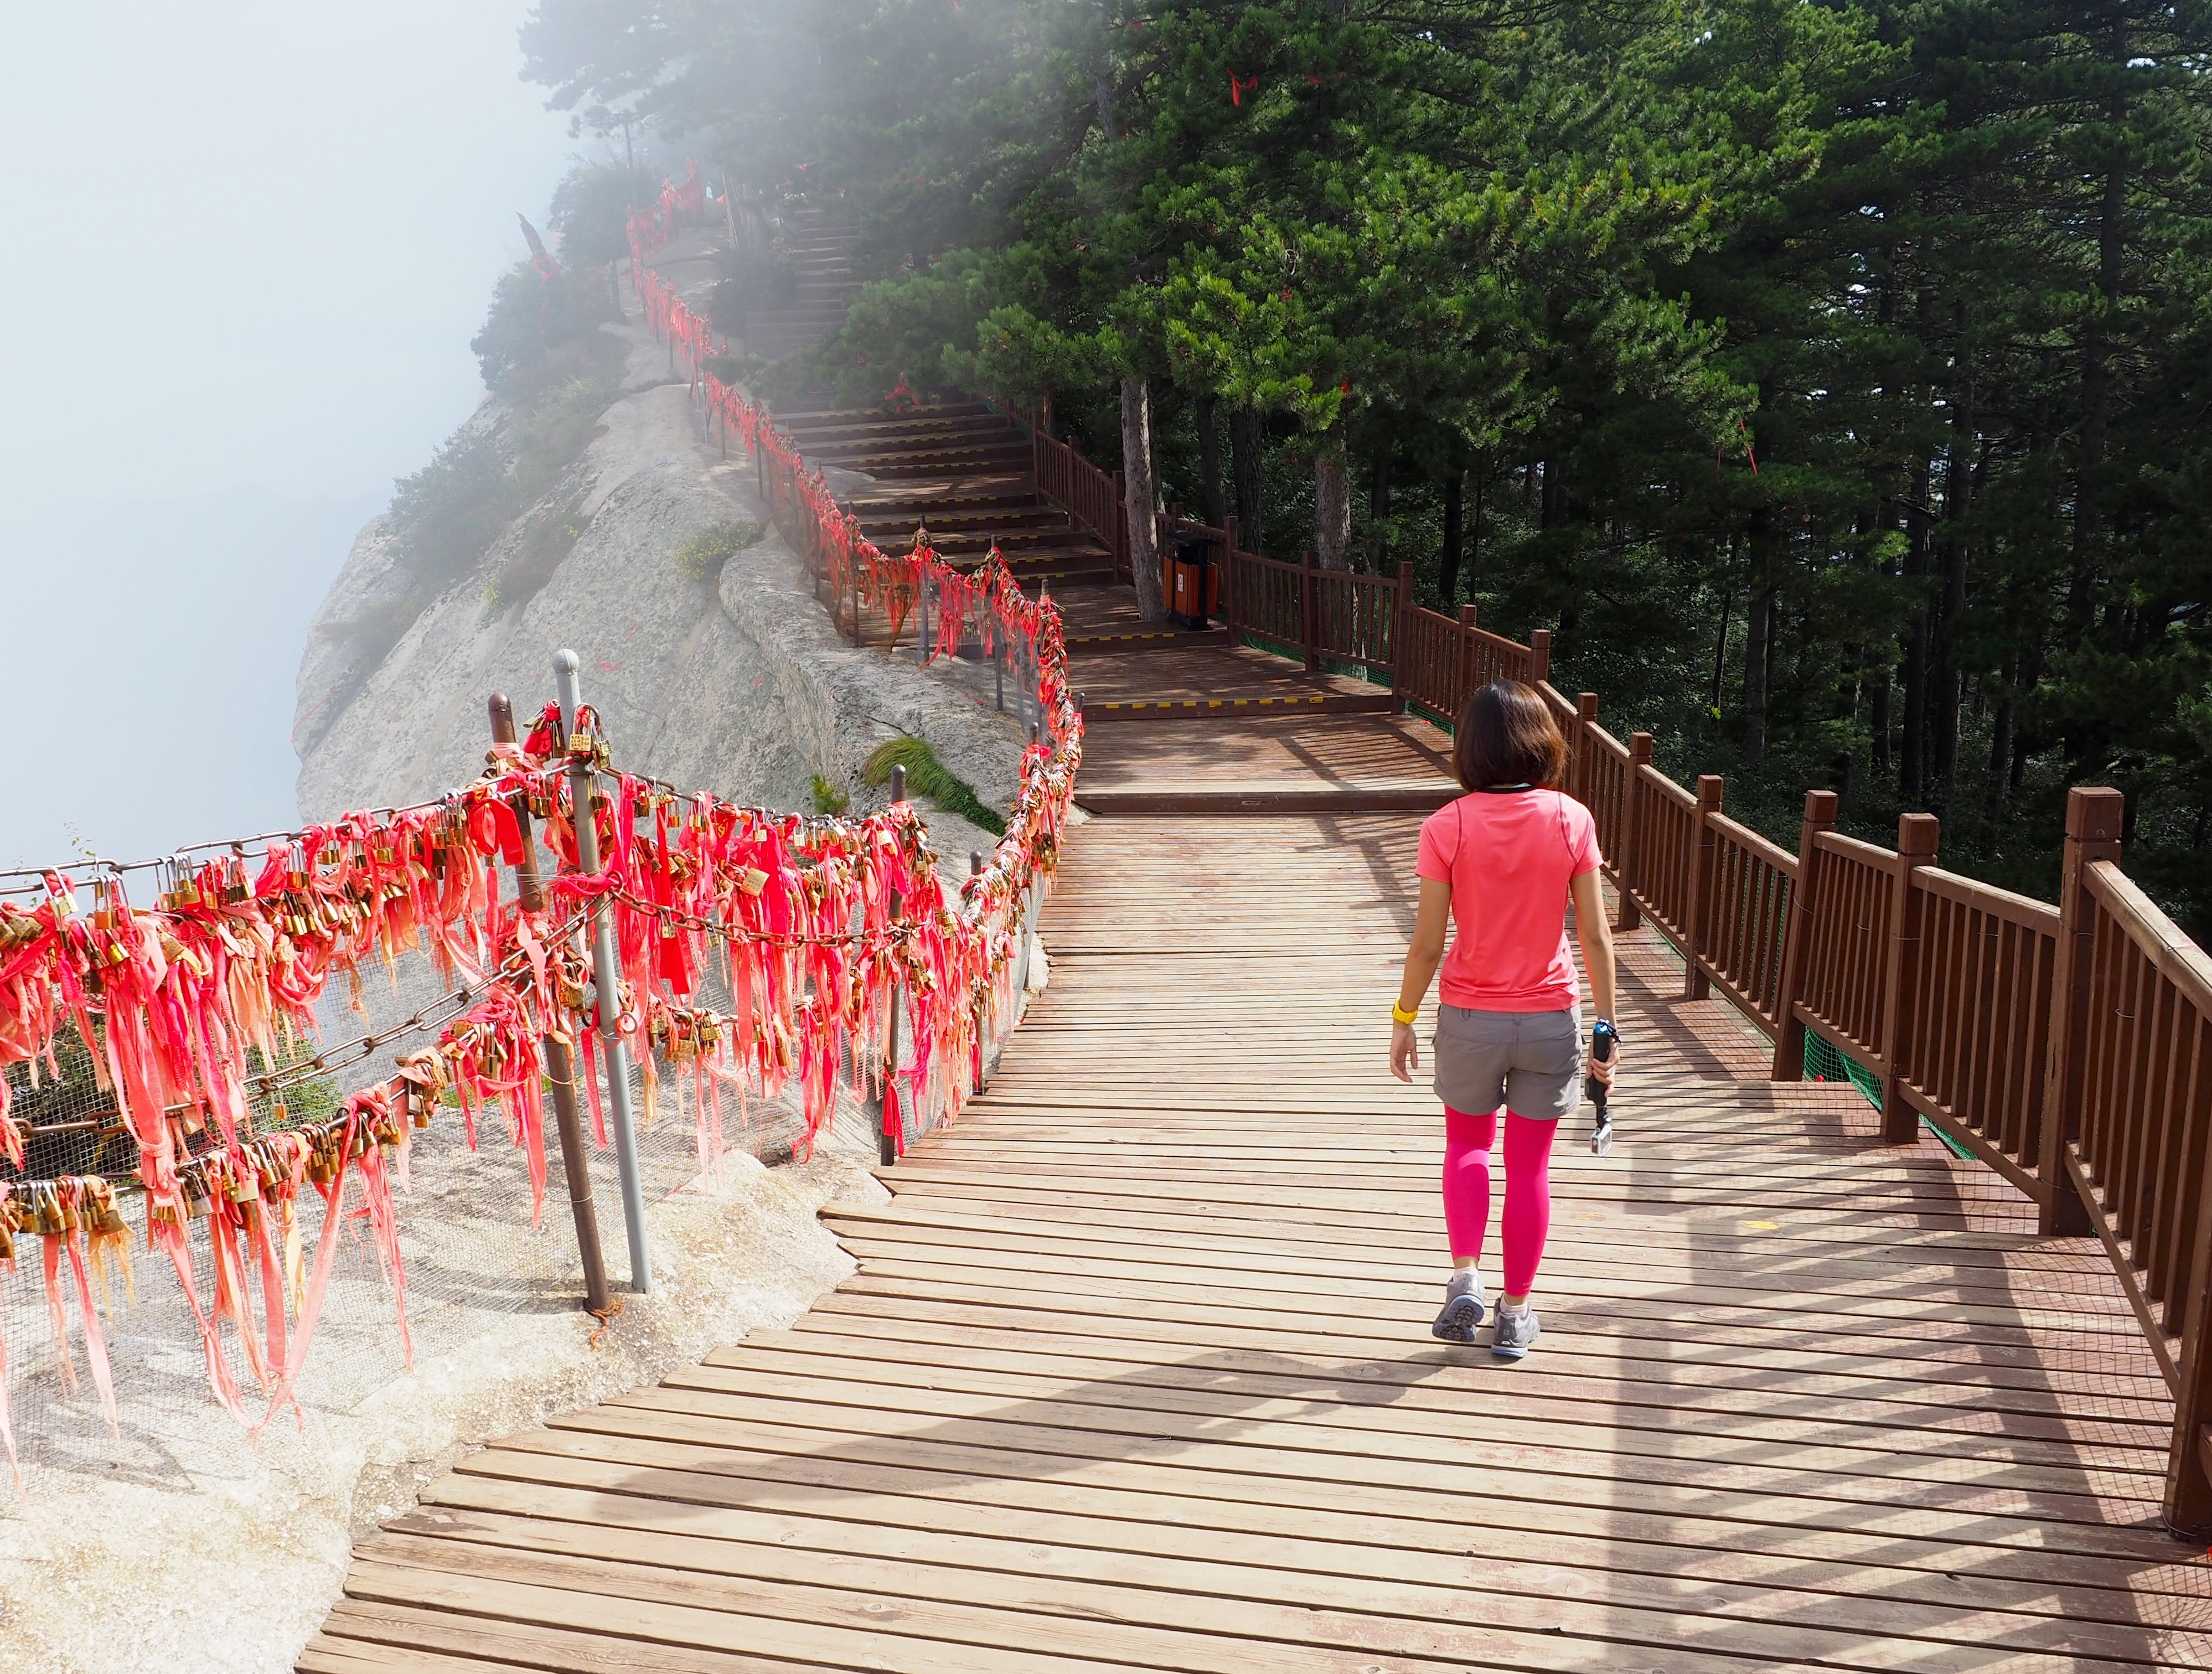 SUNNY AND MISTY. The climate up in Mount Hua can be deceiving. One moment itu00e2u0080u0099s sunny, the next moment itu00e2u0080u0099s misty. Photo by Abram Joseph Bondoc